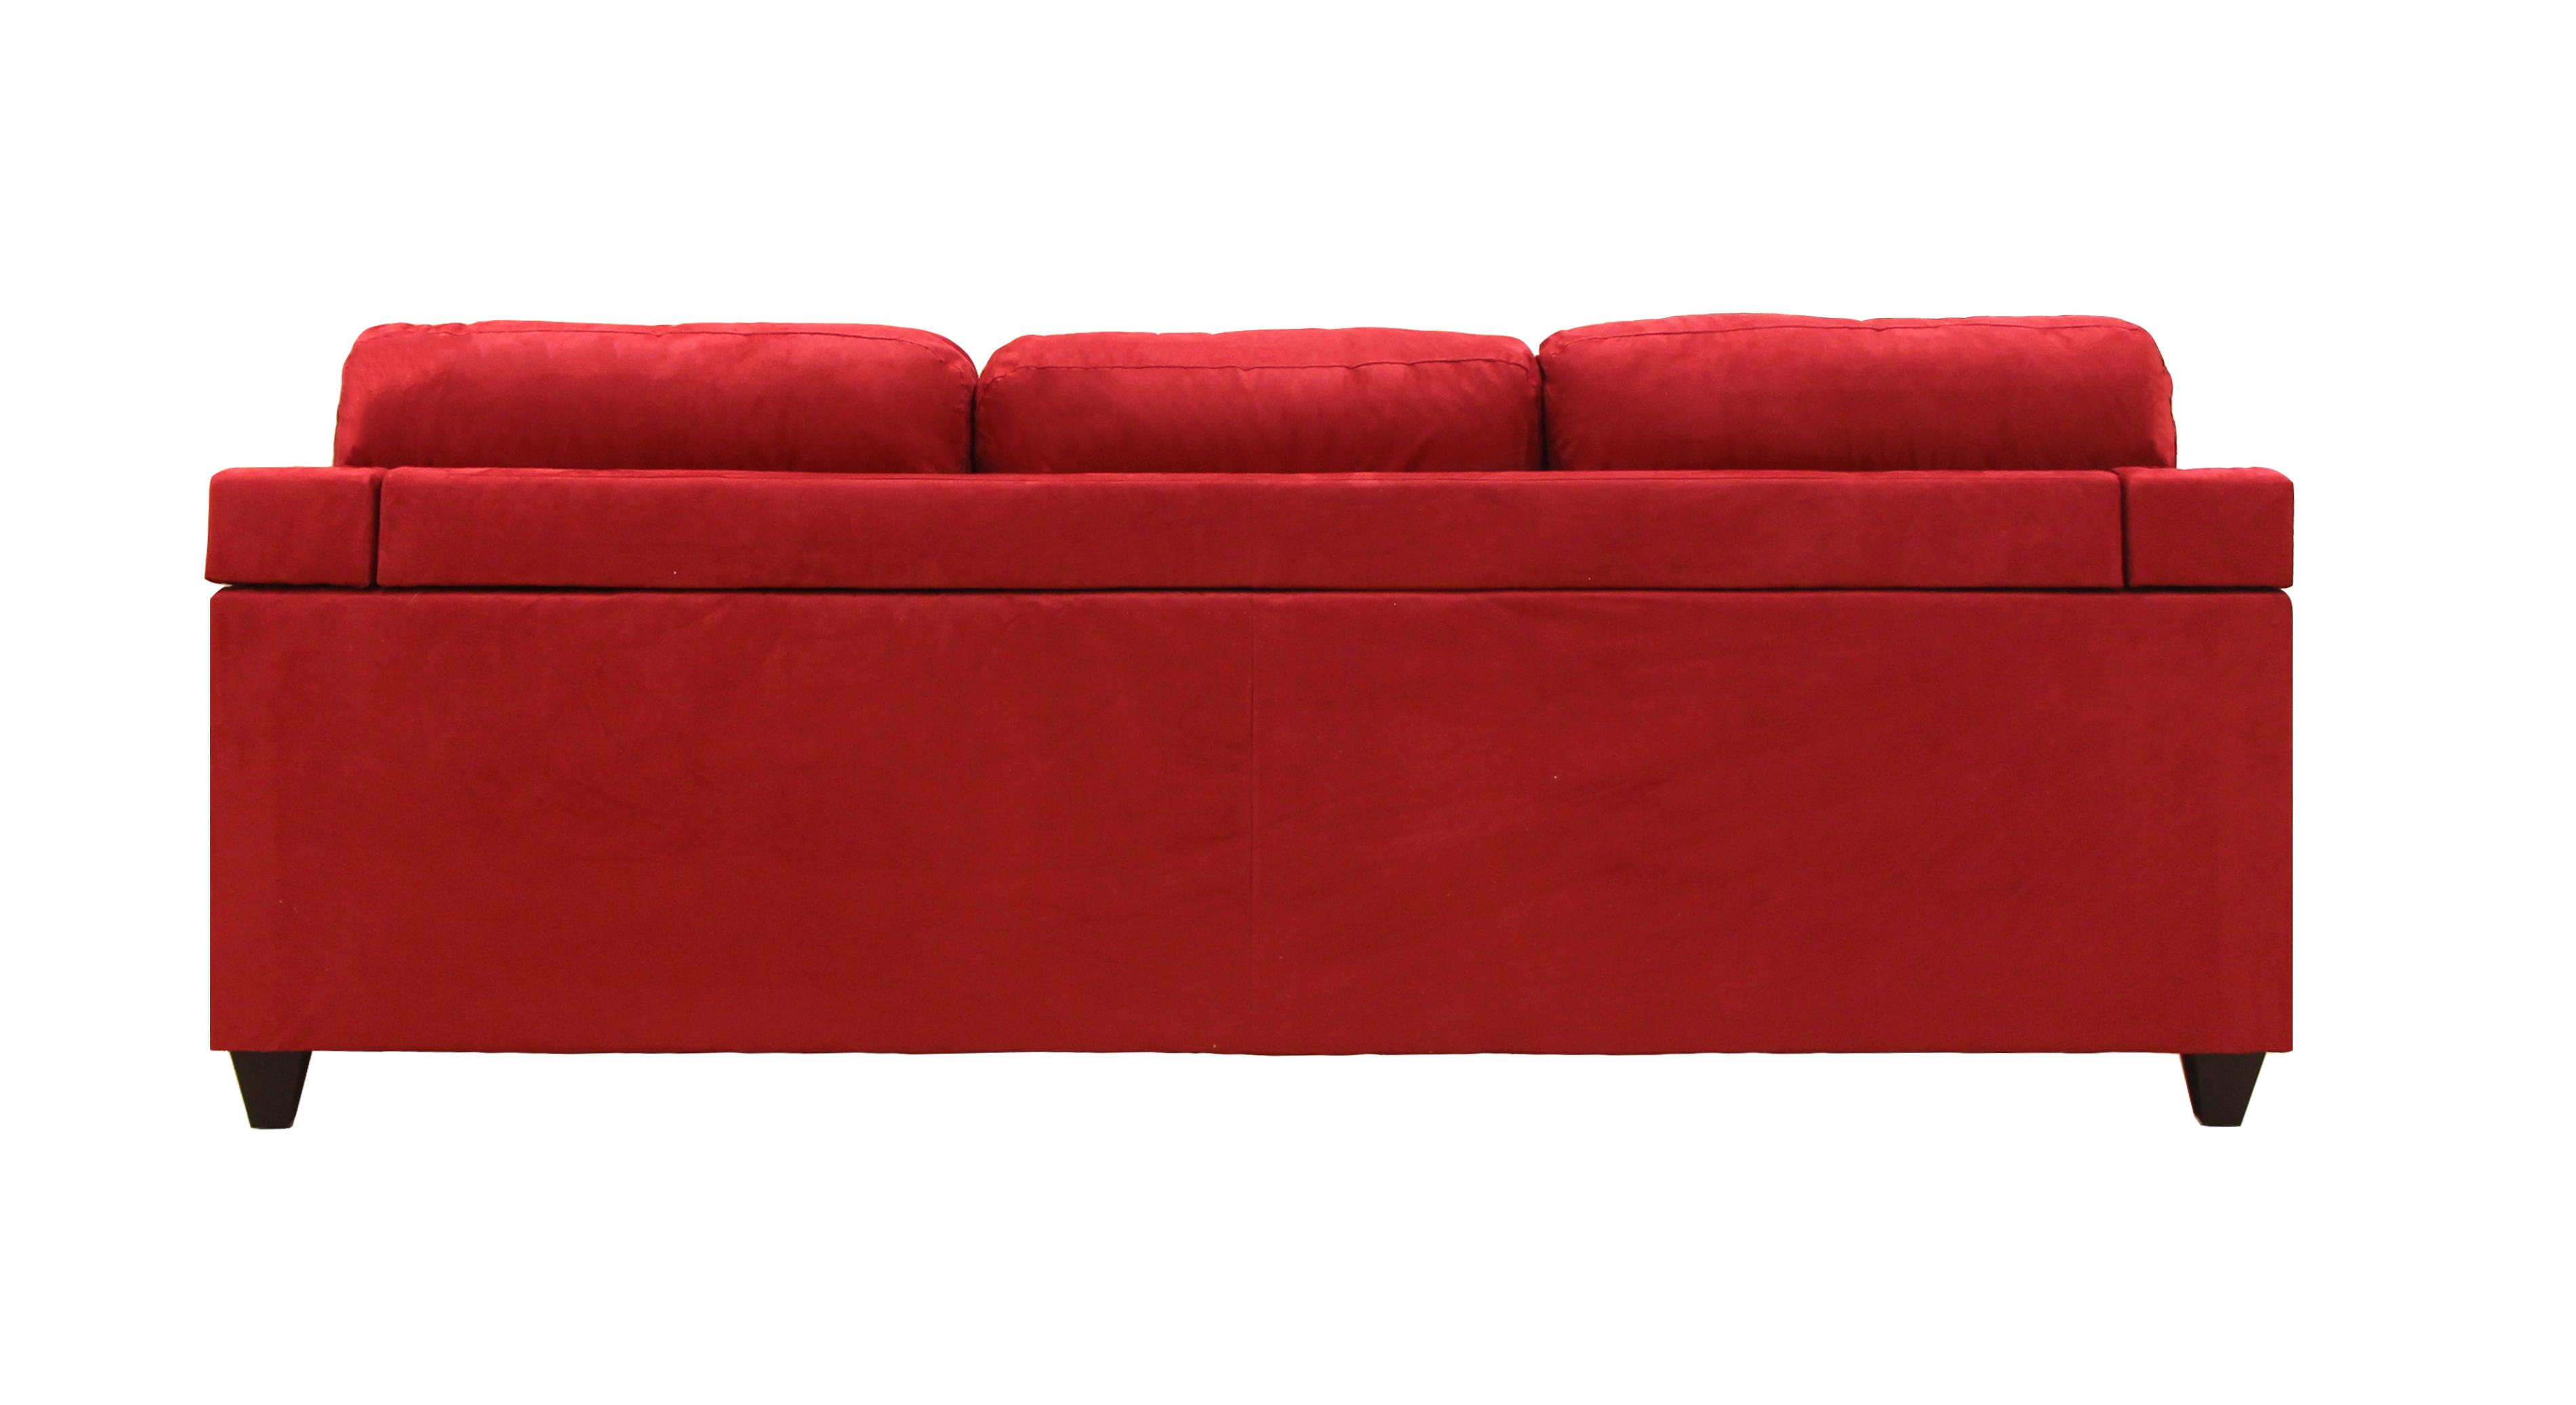 Fantastic Acme Furniture Vogue Red Reversible Chaise Sectional The Bralicious Painted Fabric Chair Ideas Braliciousco